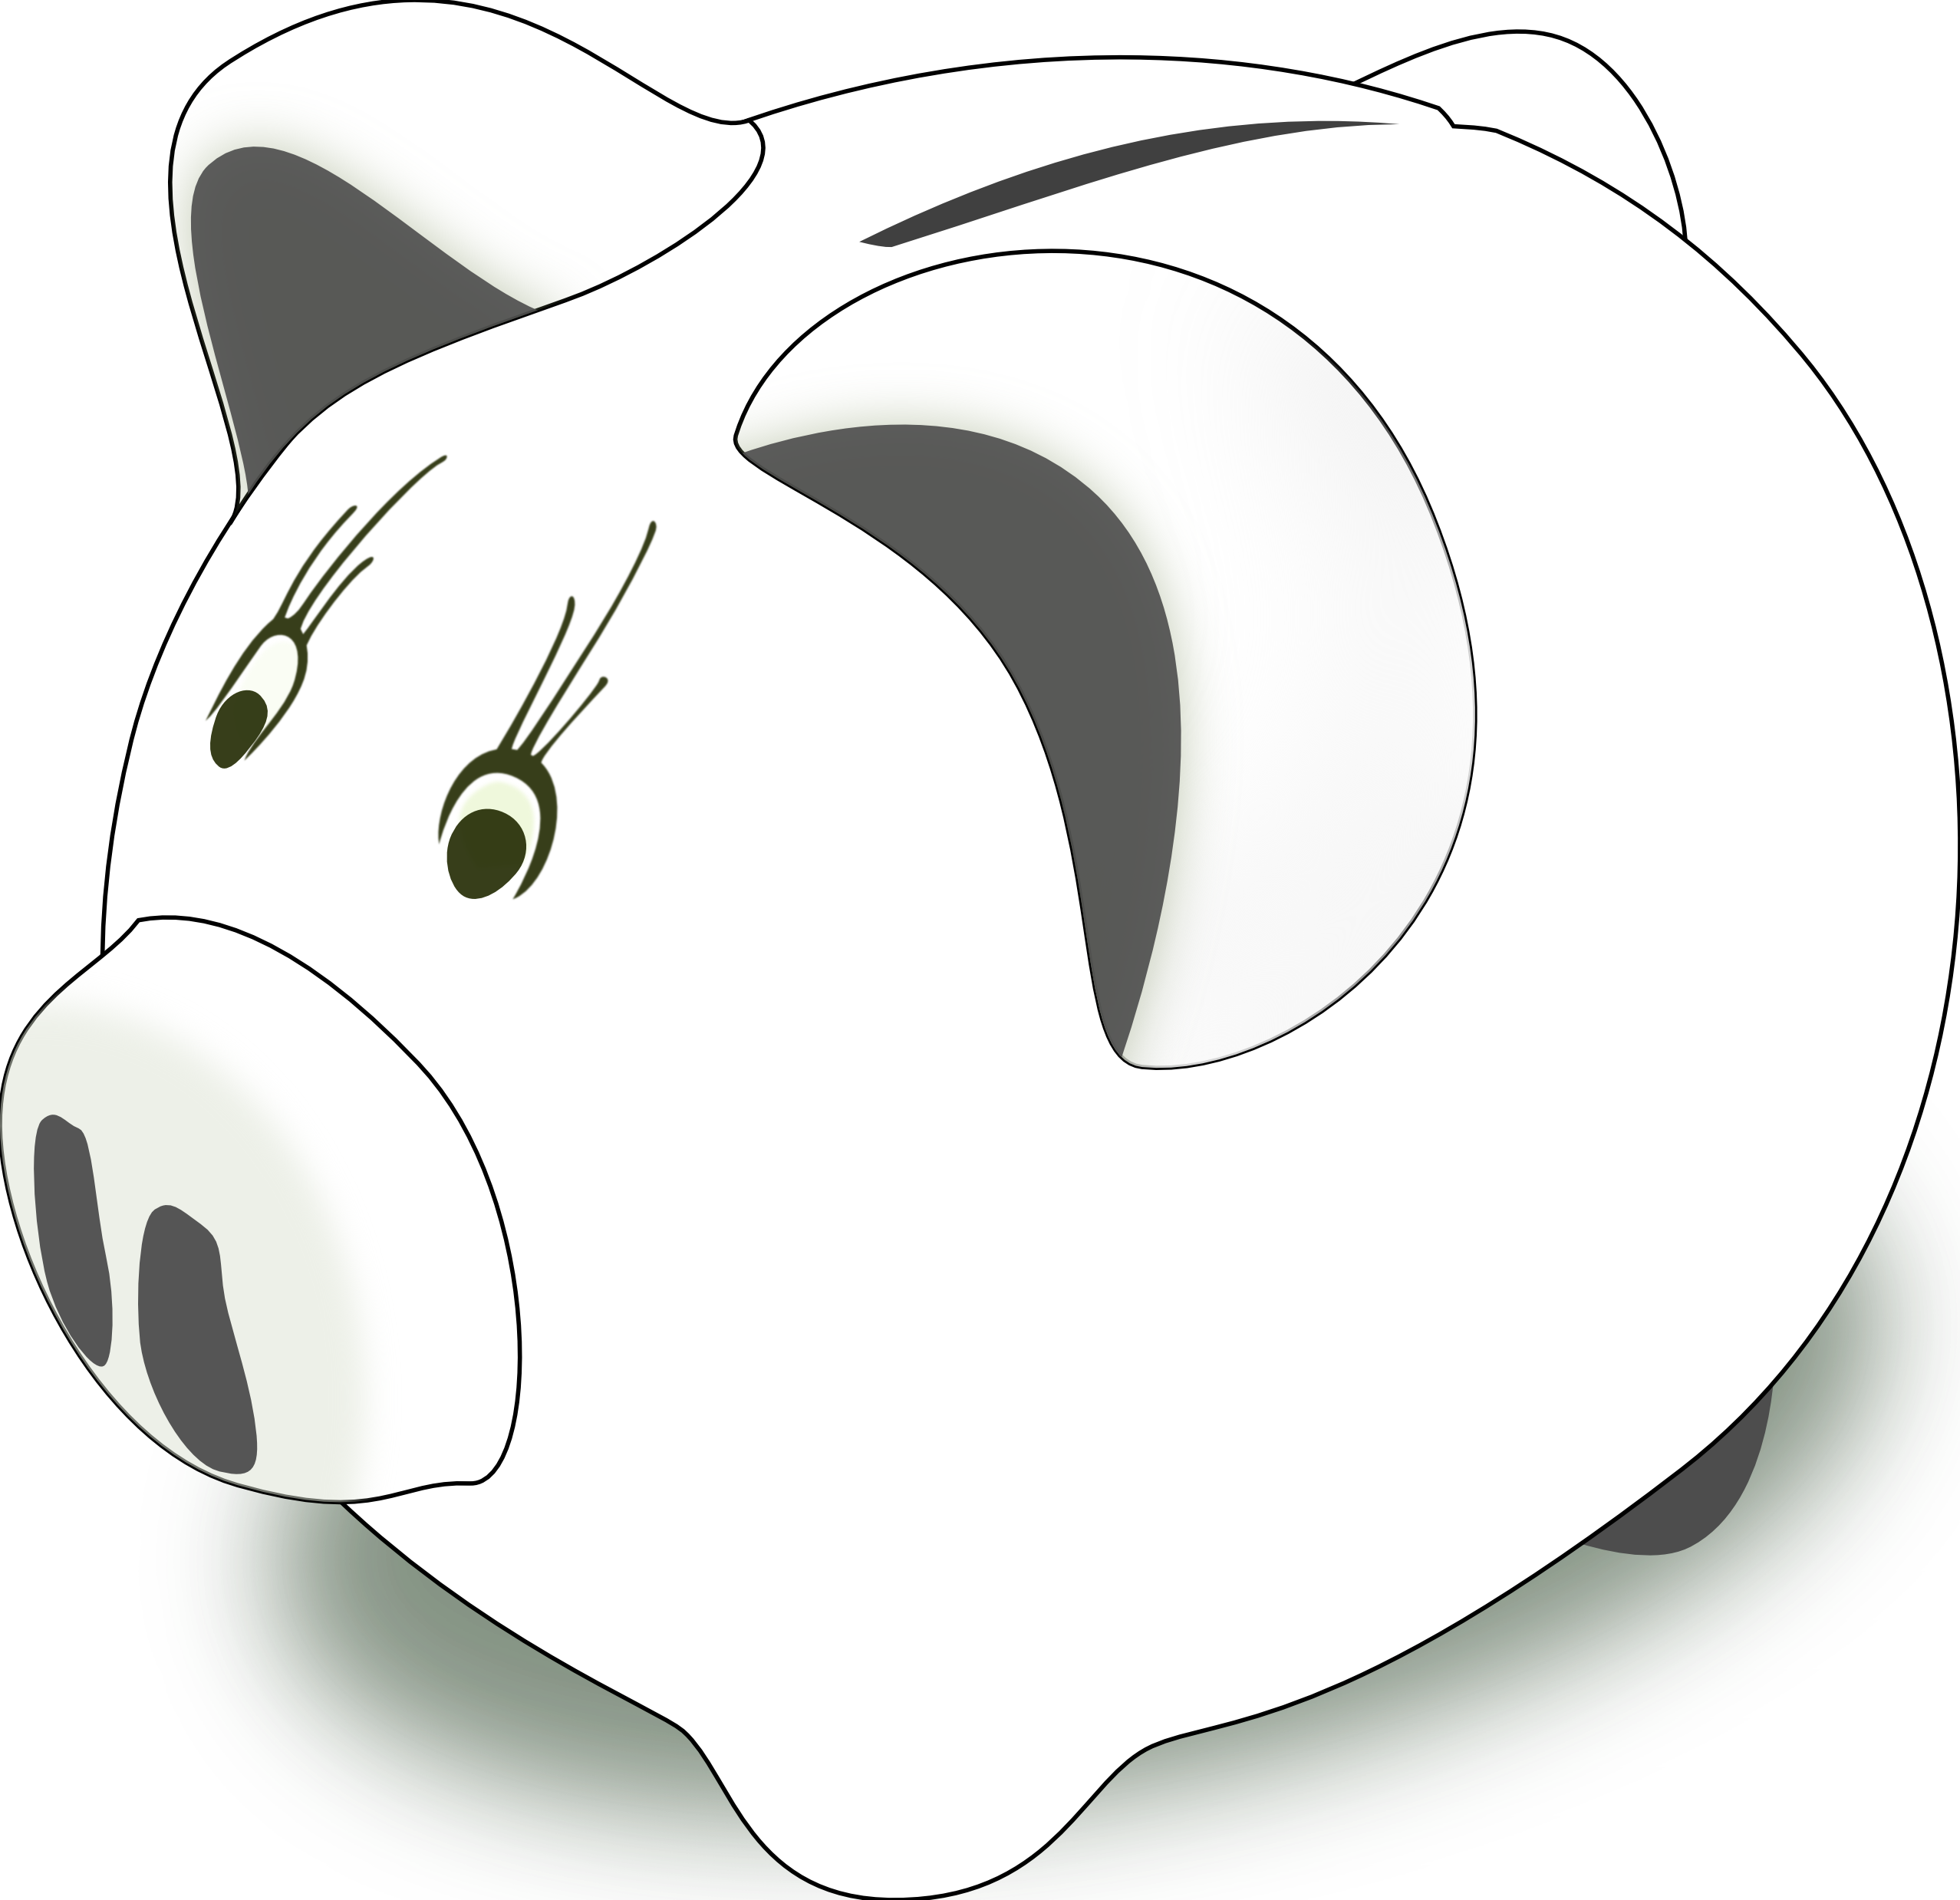 Free piggy bank clipart black and white vector black and white Piggy Bank Clipart Black And White | Clipart Panda - Free Clipart ... vector black and white